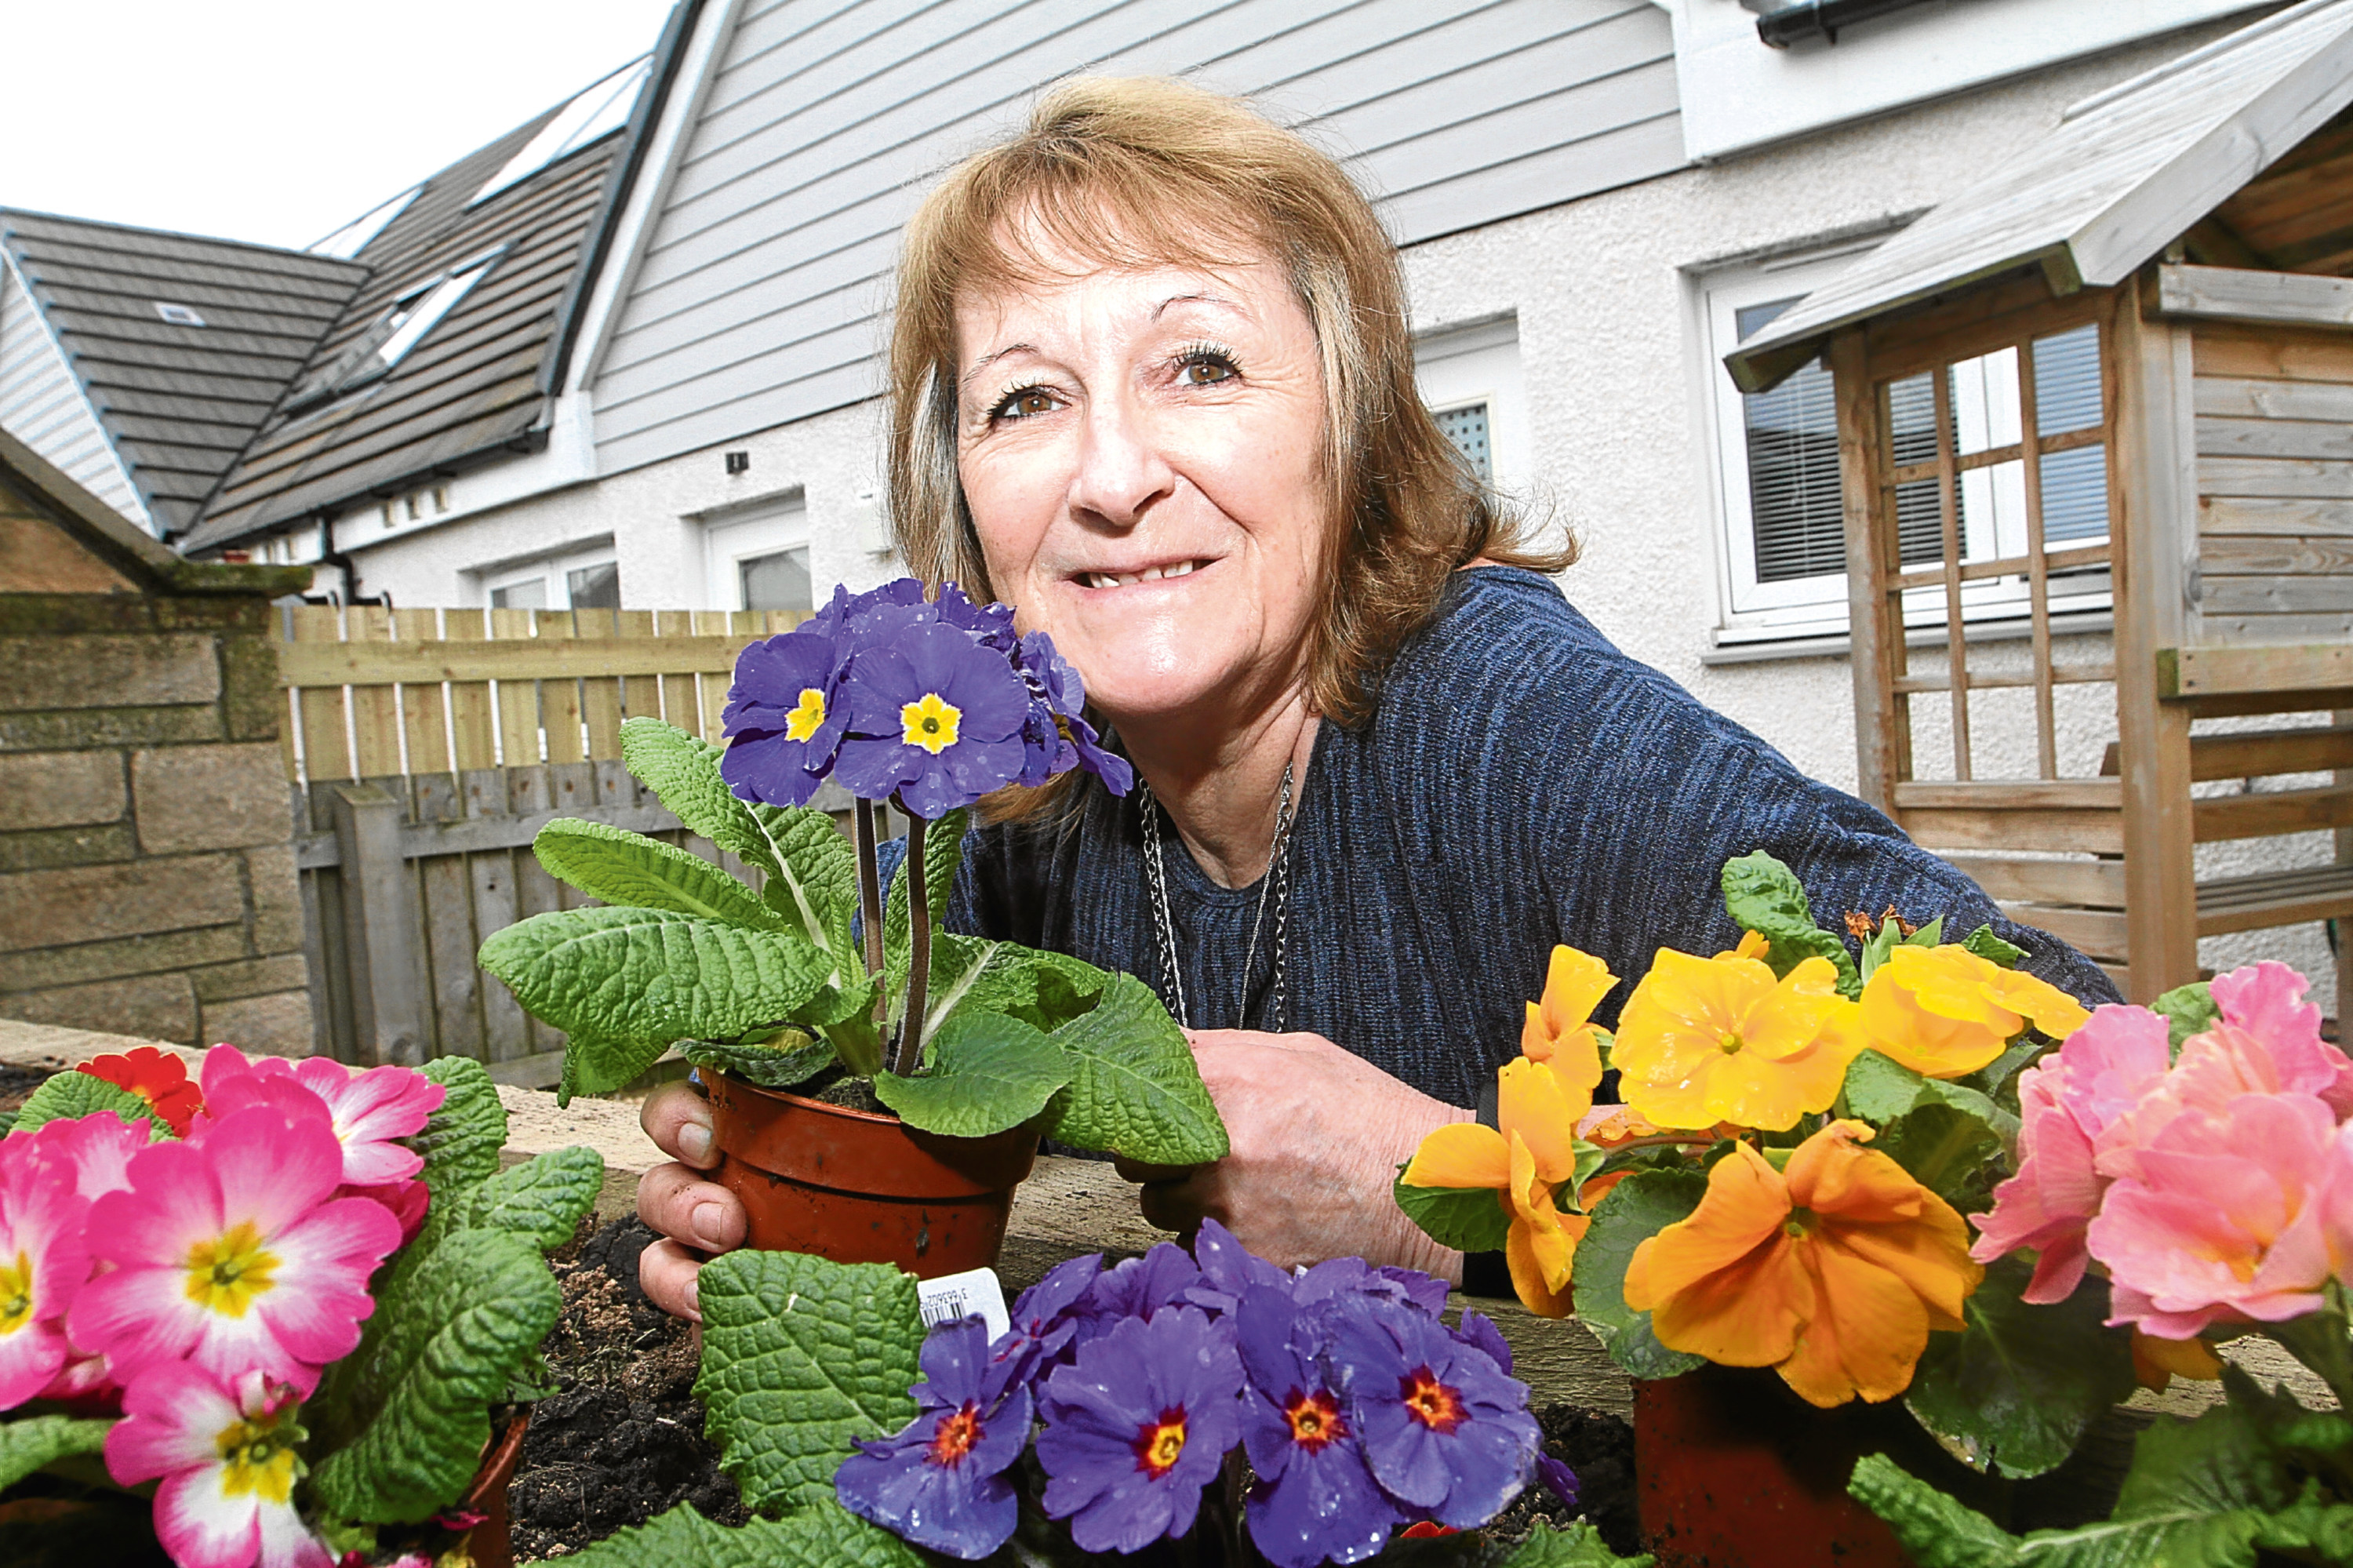 Jane was delighted with her new plants in her garden makeover.